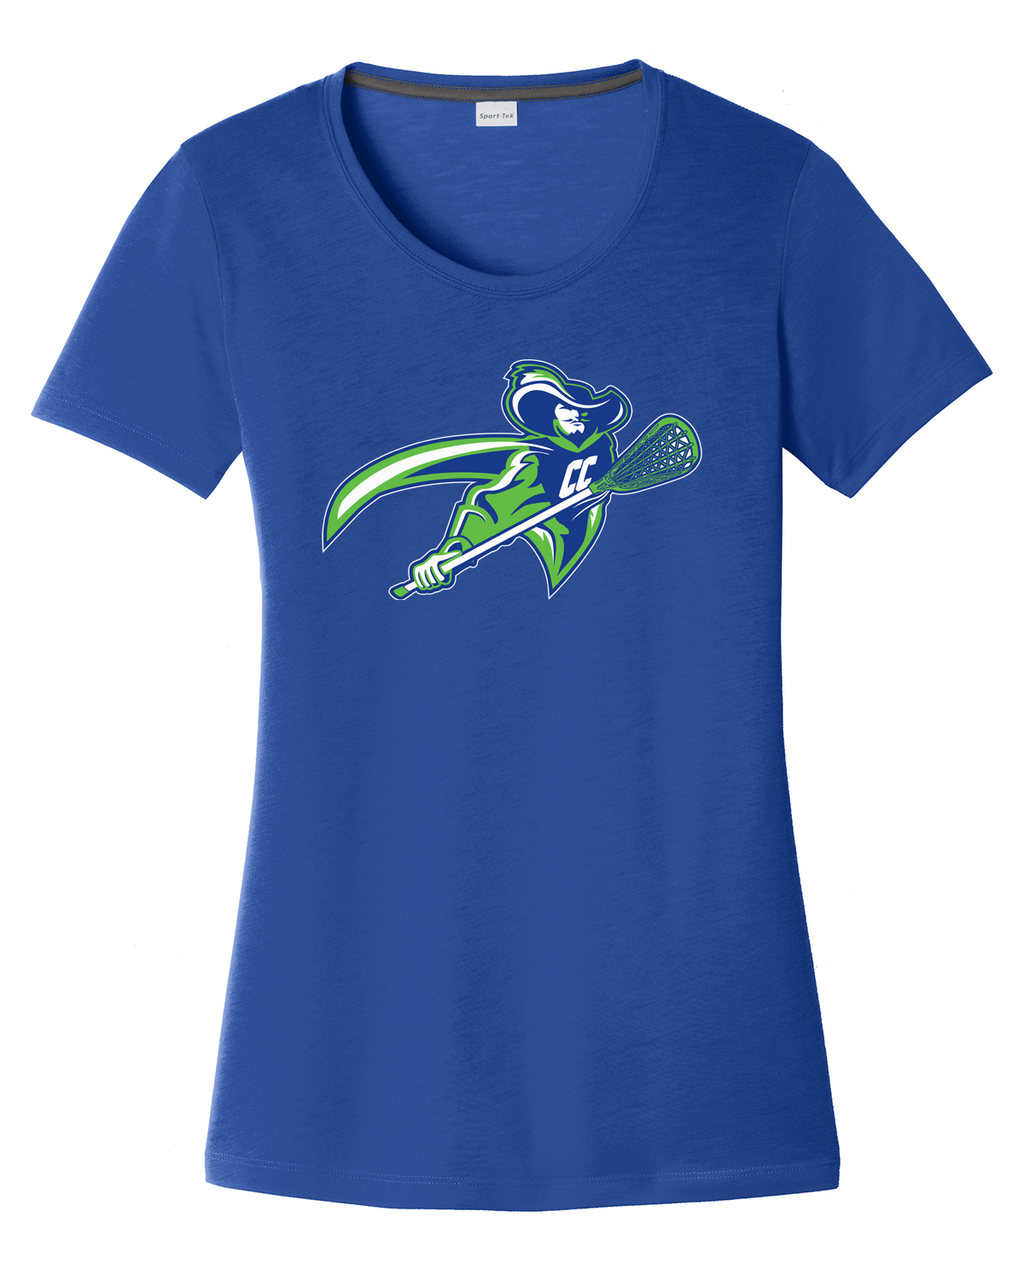 Cavaliers Lacrosse Women's CottonTouch Performance T-Shirt